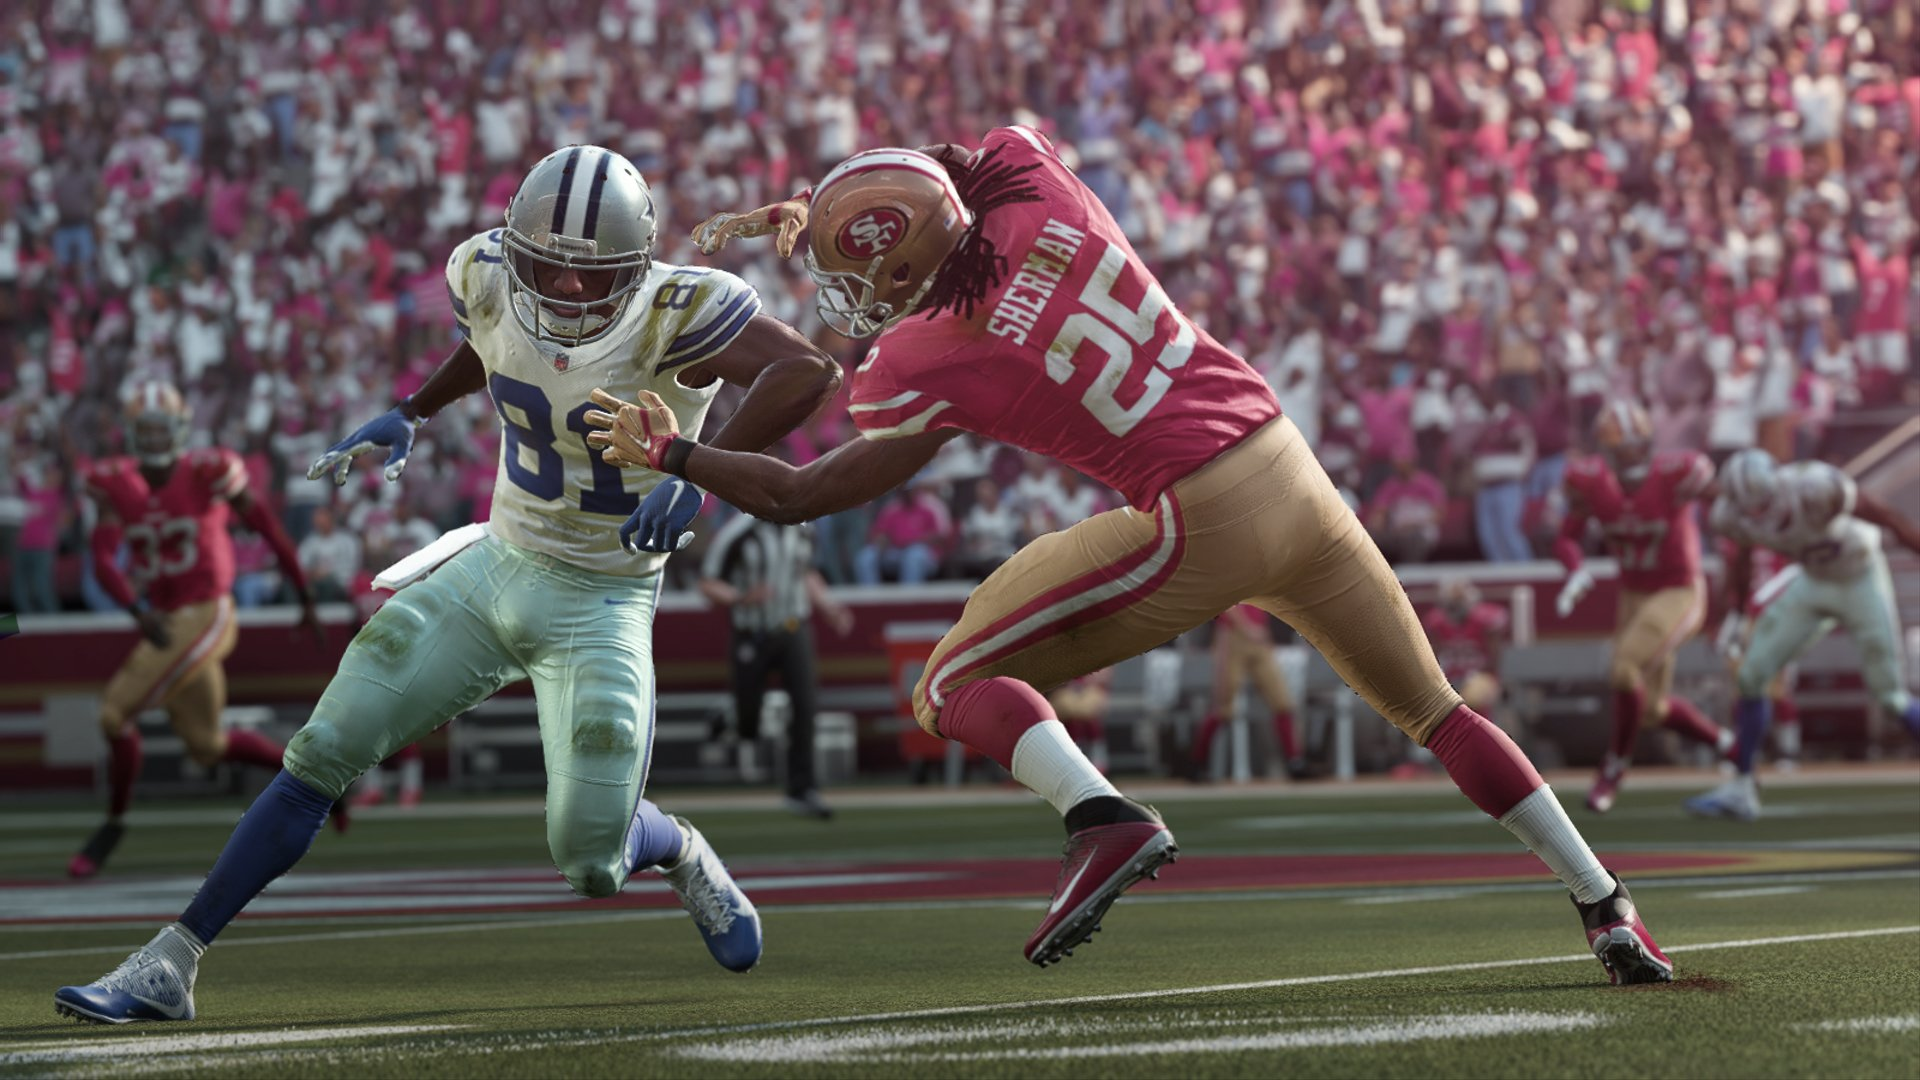 Madden NFL 19: Hall of Fame Edition - Xbox One by Electronic Arts (Image #2)